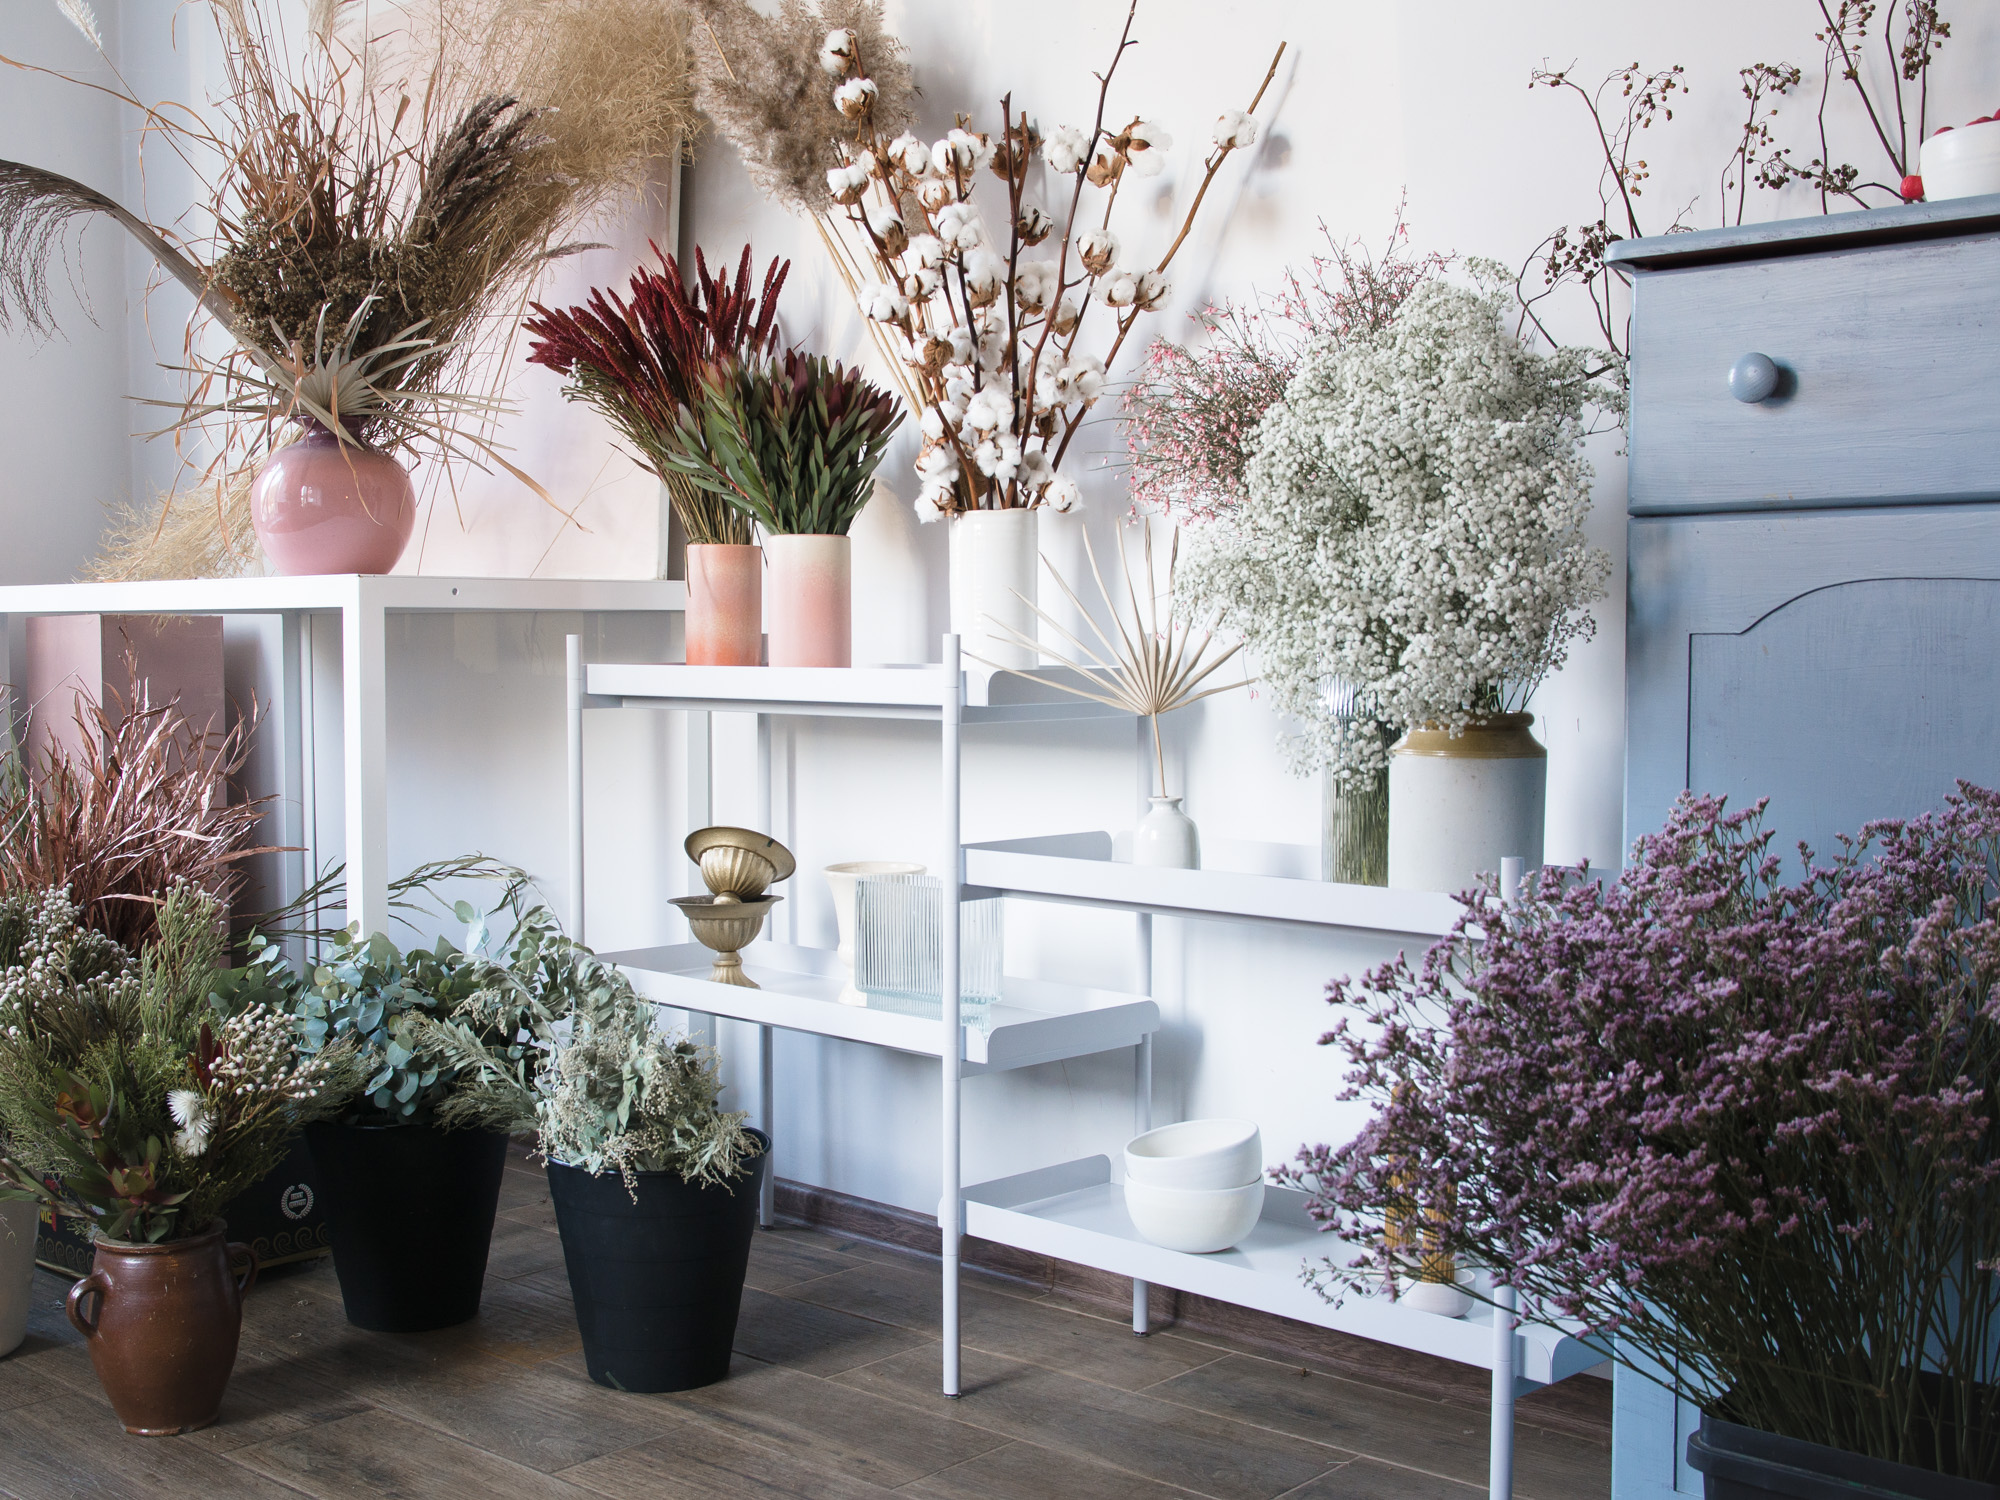 Babie Lato – floristic workshop